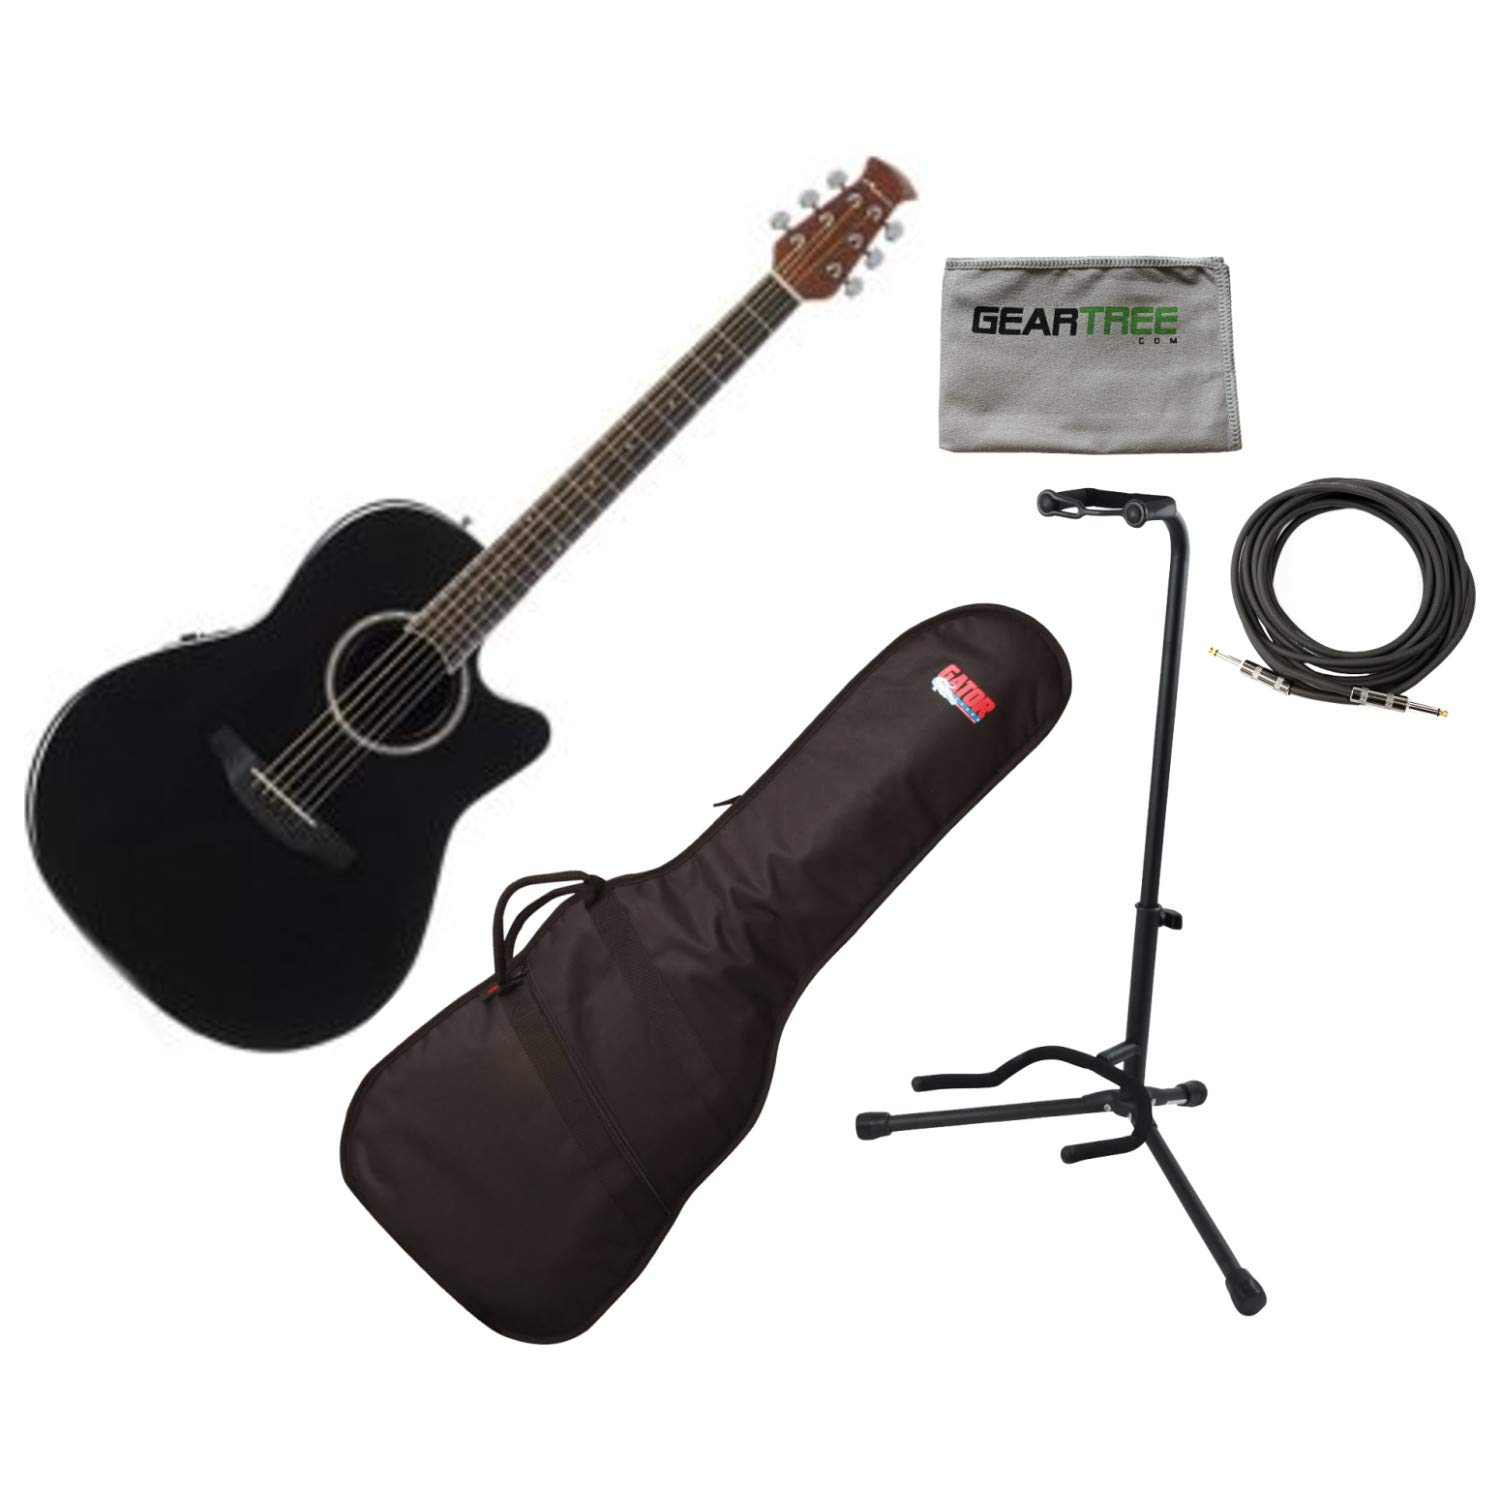 Ovation AB24II-5 Acoustic Electric Guitar, APPLAUSE STD MID, BLACK w/Gig Bag, by Ovation